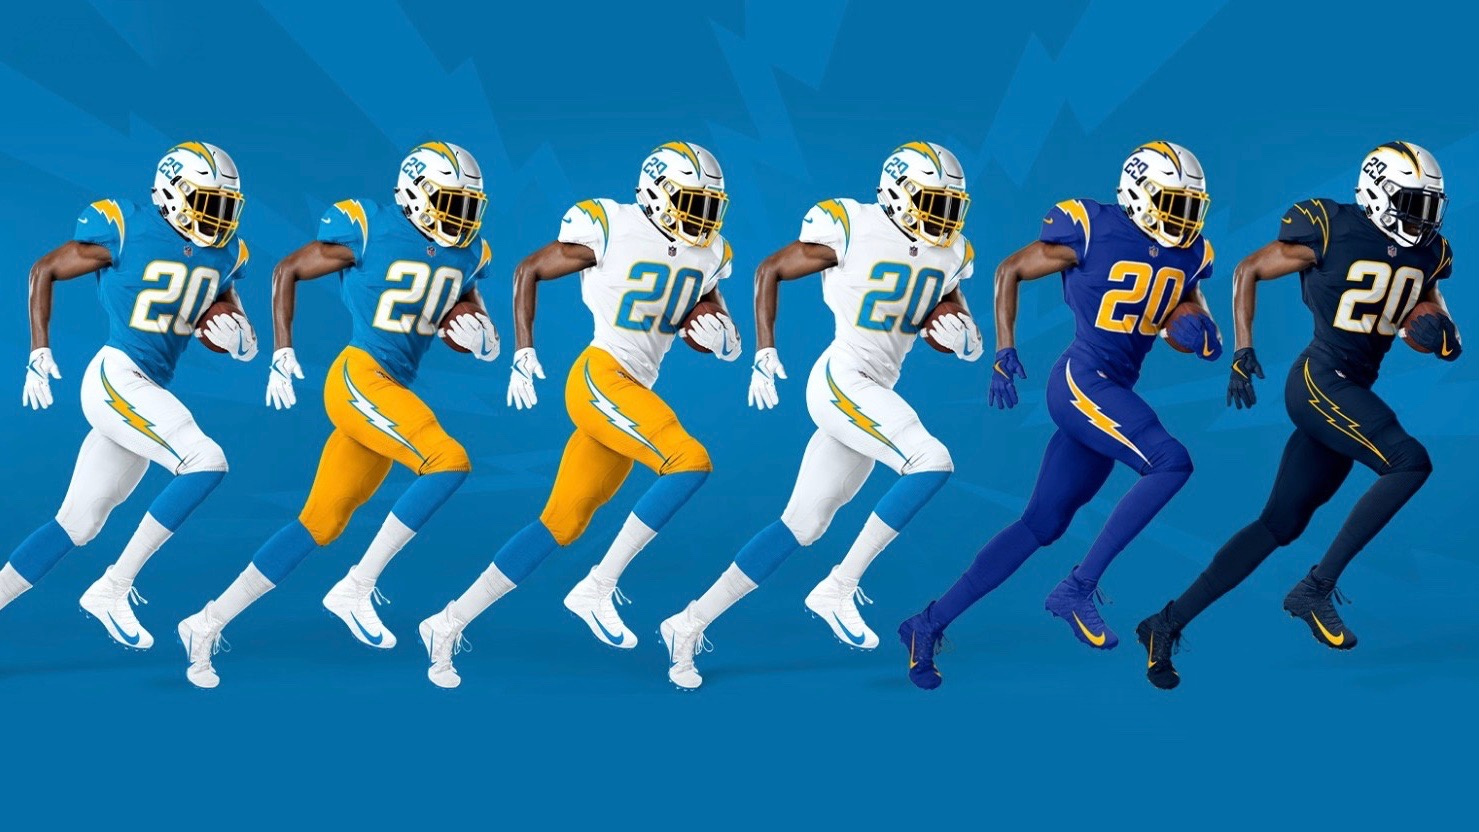 chargers uniforms 2020